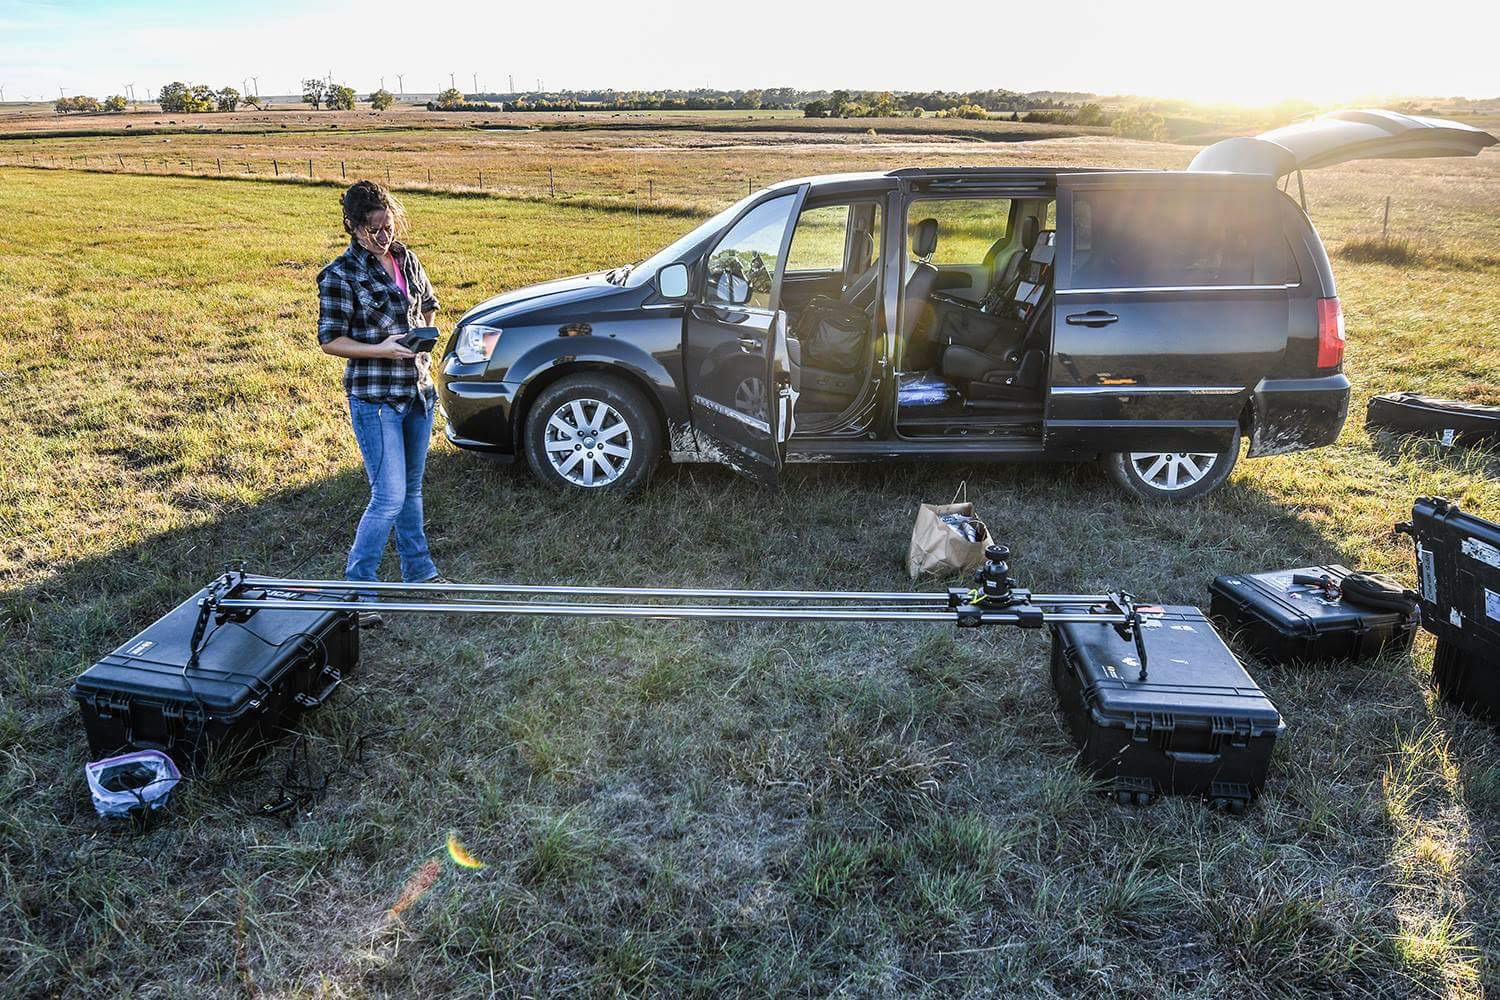 October 2016 in O'Neill, NE, setting up the Cinevate Motion Control Timelapse. It's not from this trip, but is an accurate representation of what life on the road looks like. The only difference being that it's colder right now, and our minivan is white.